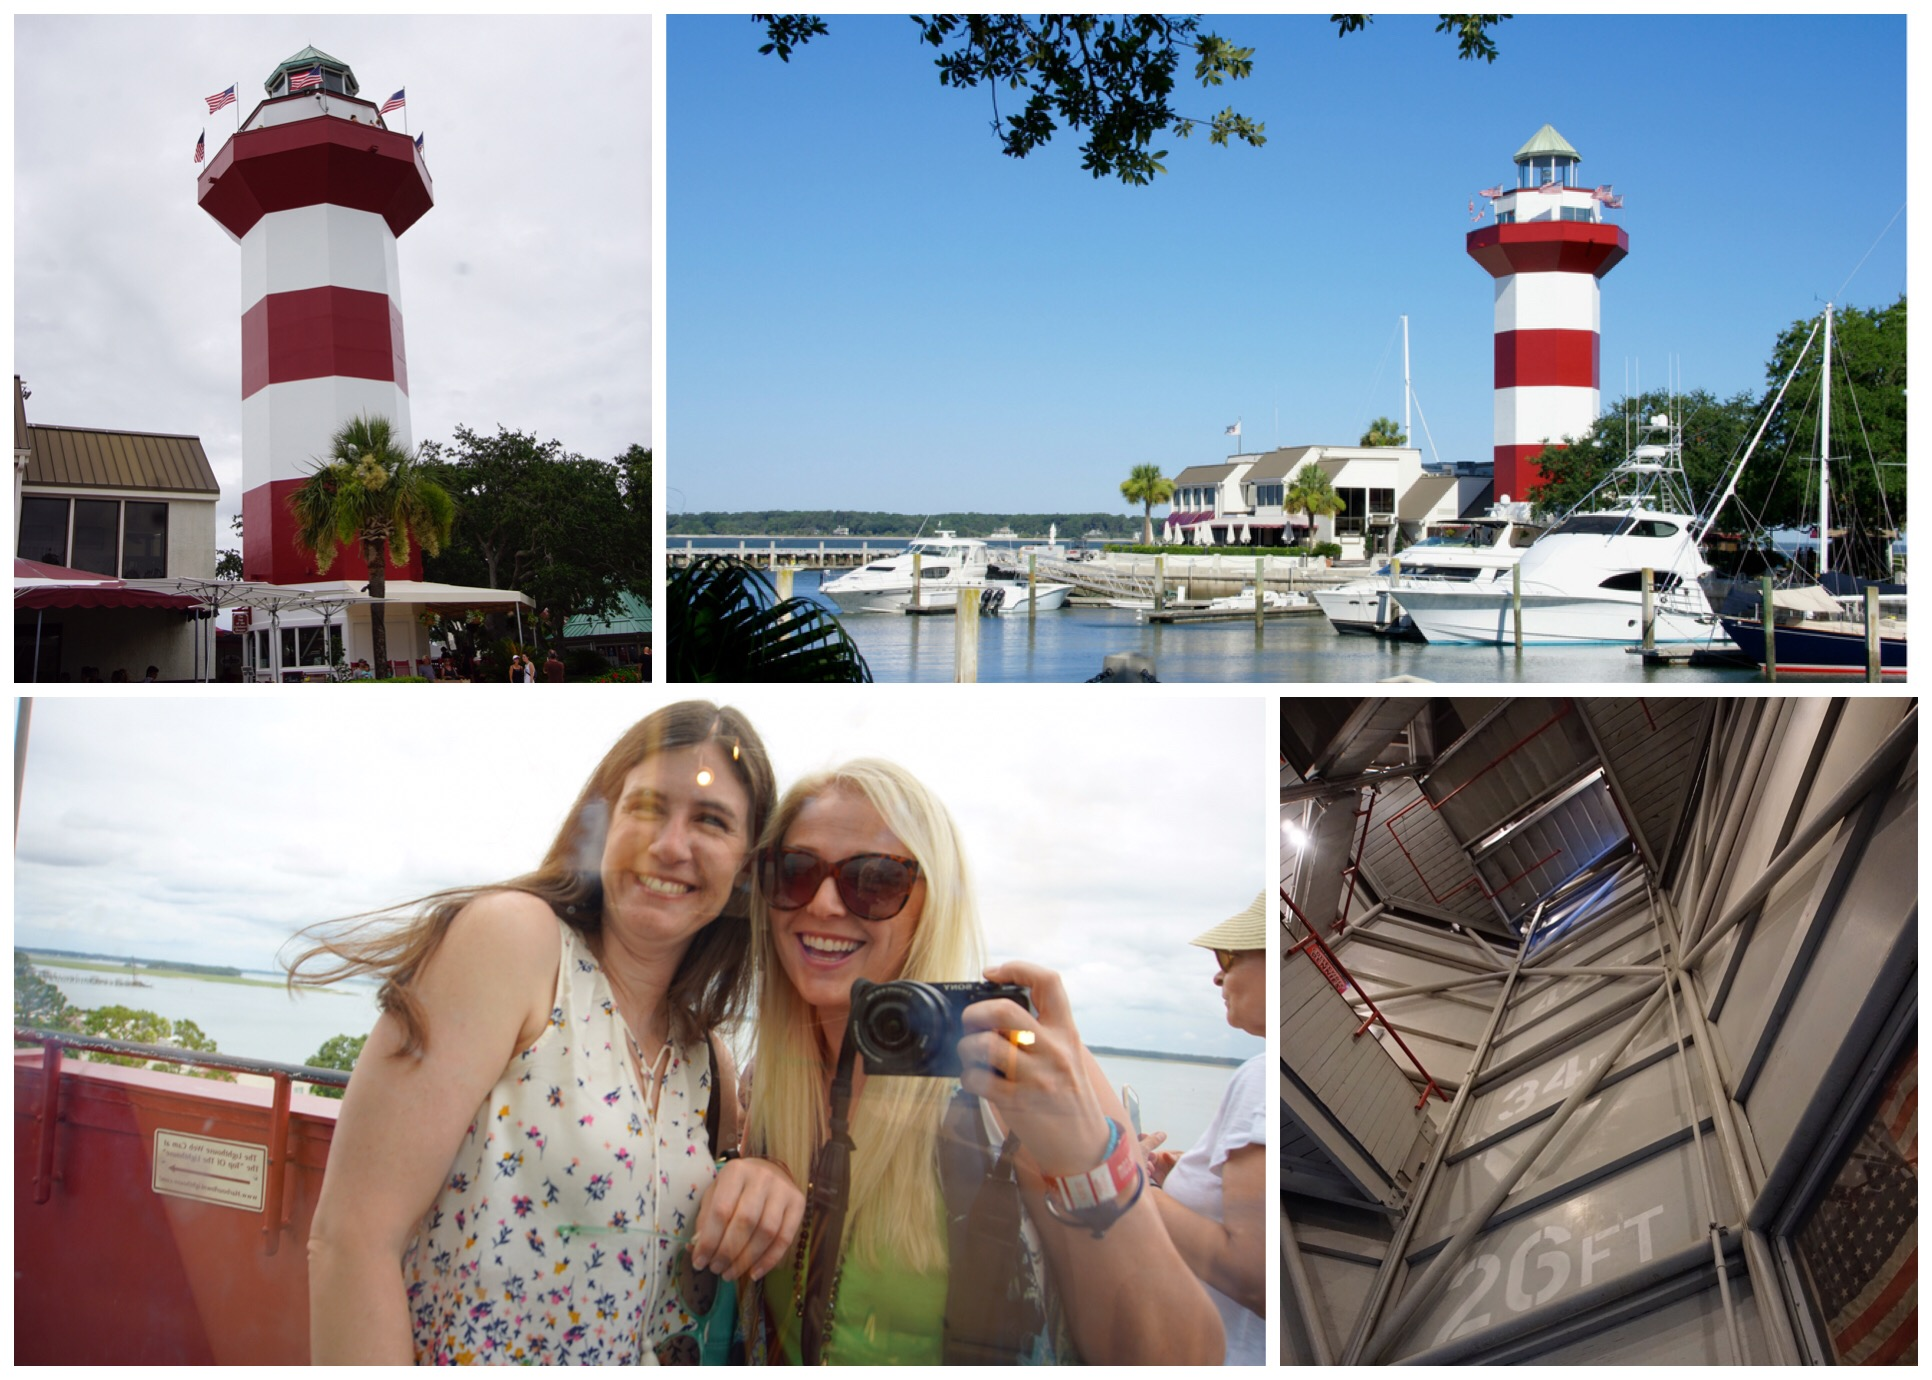 Hilton Head Getaway Guide - With miles of Atlantic windswept beaches, tranquil waterways and marshes, ample outdoor activities and a wide choice of hotel and vacation rental options, Hilton Head is an alluring vacation destination for anyone seeking to get away. Here are 9 ways to unwind on the island...